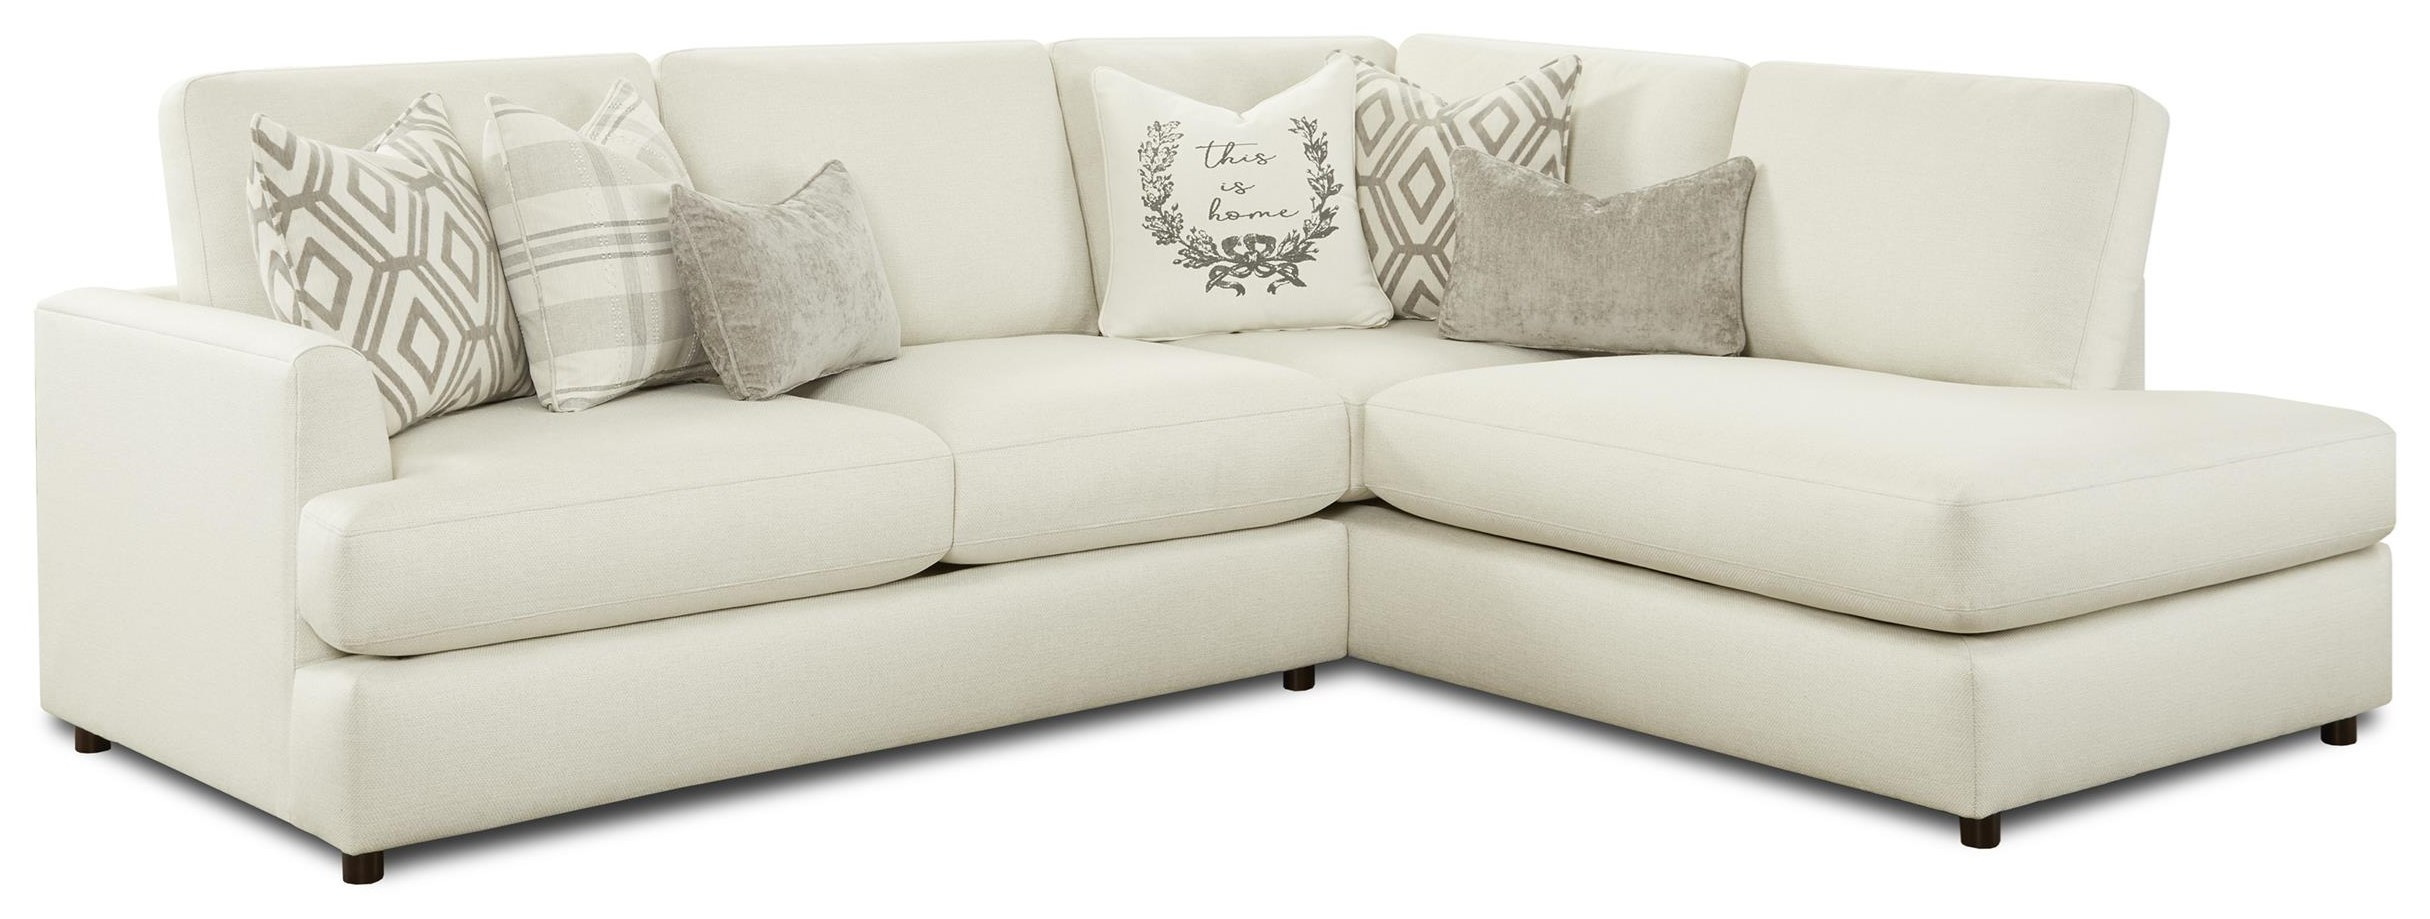 23-00 Two Piece Sectional - LAF sofa RAF Chaise by Kent Home Furnishings at Johnny Janosik